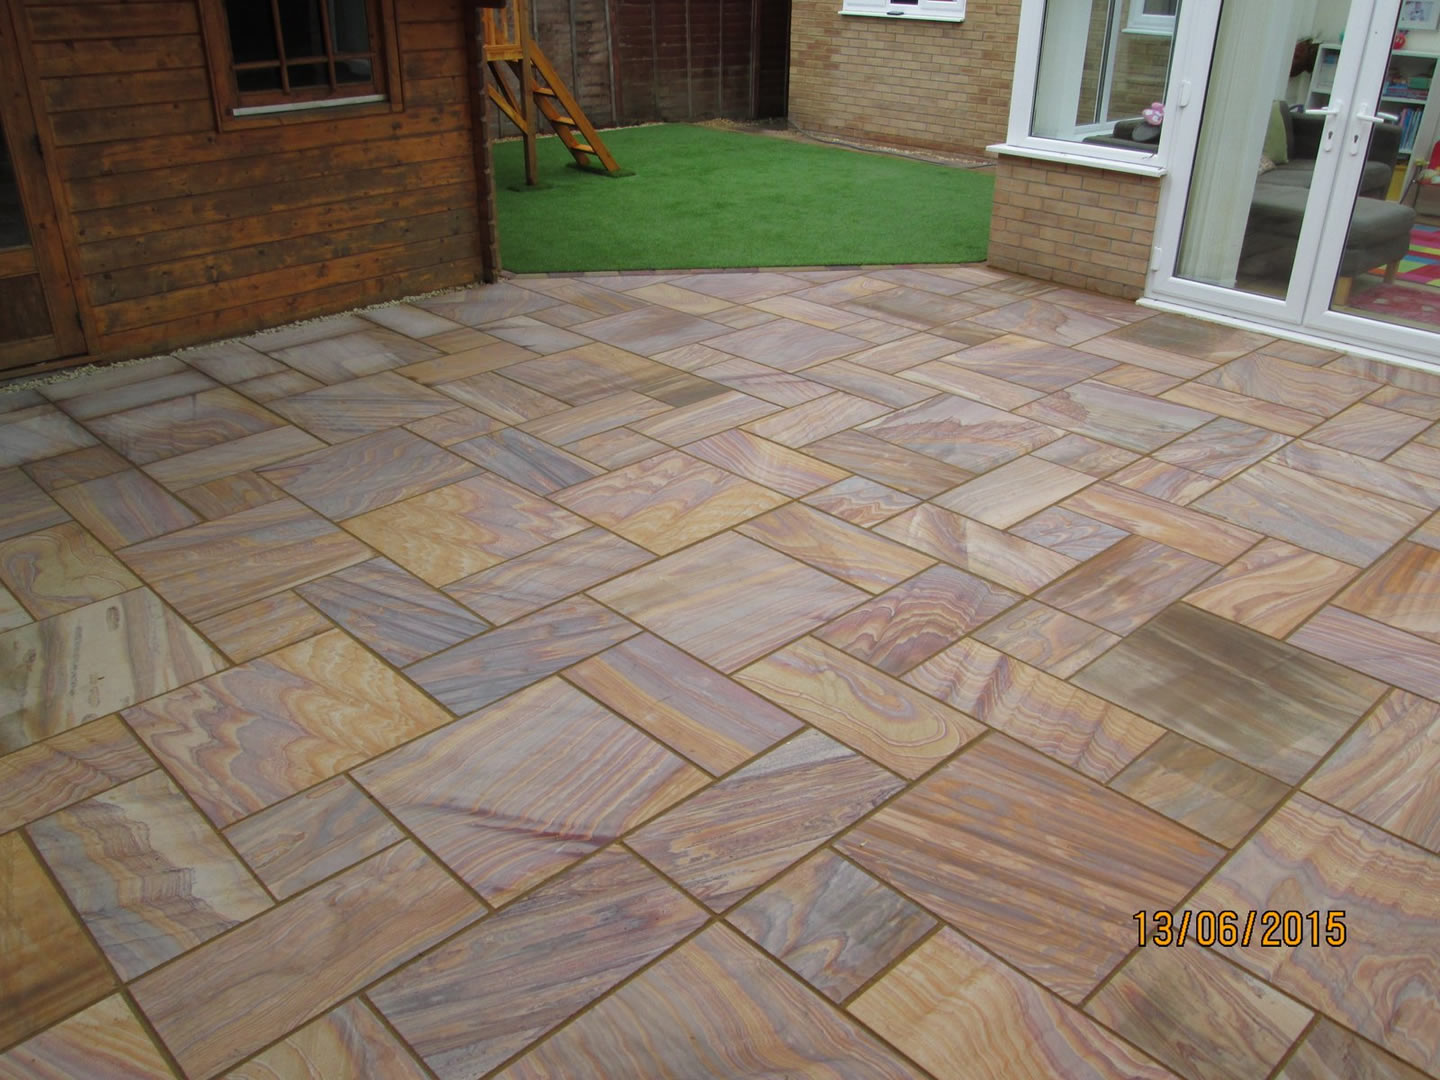 Garden Patio & Paving - 4M01